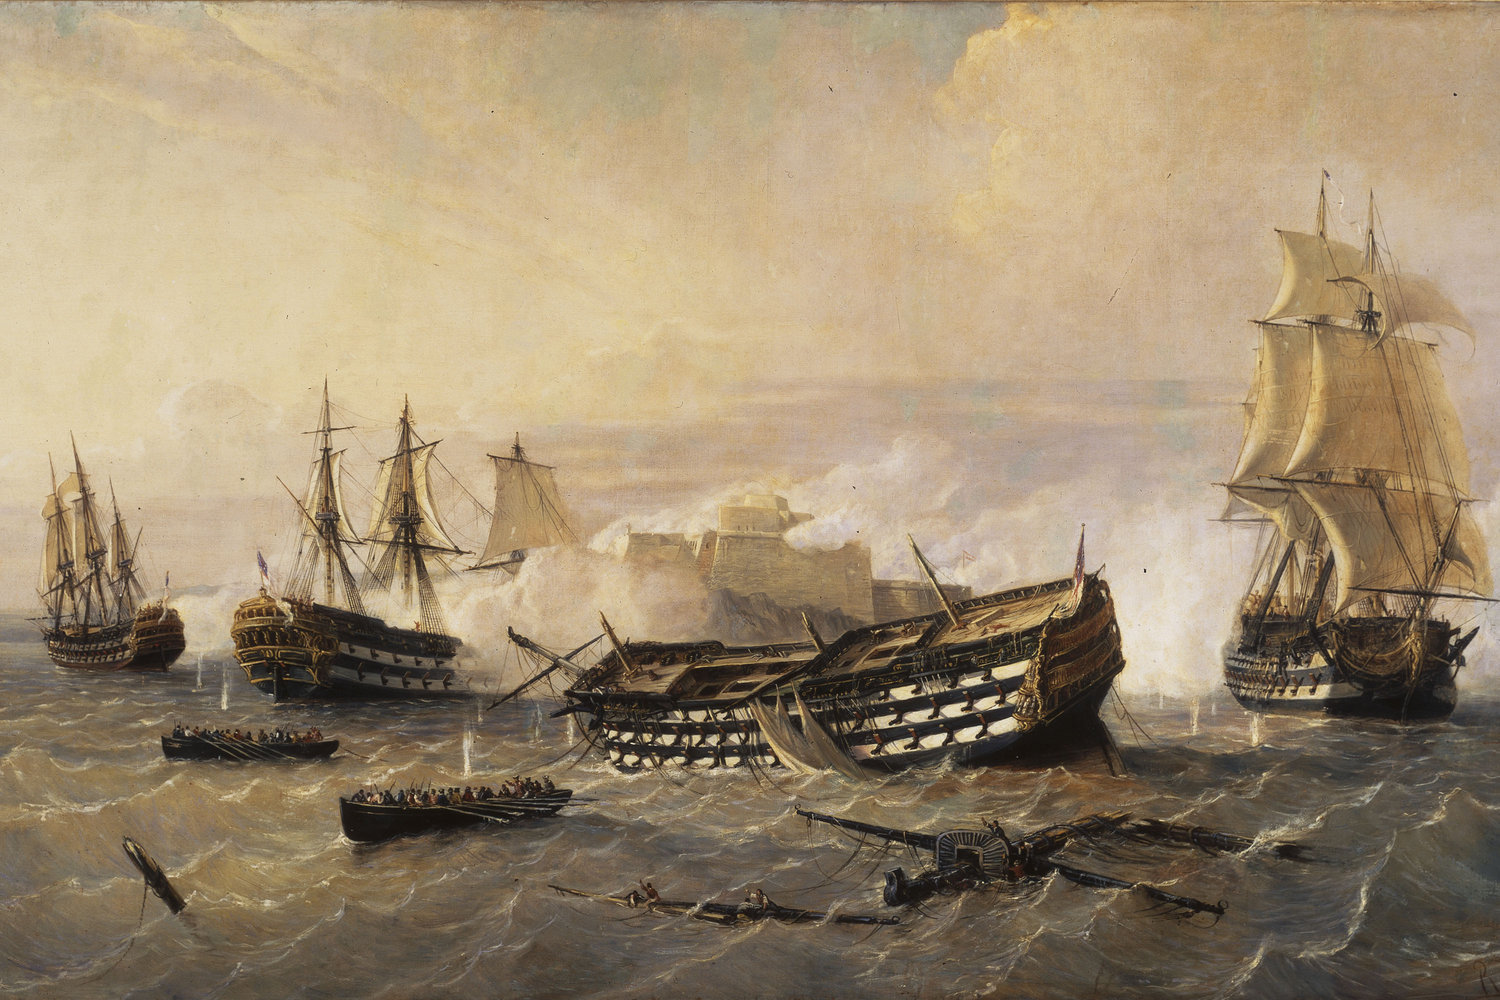 British_ships_in_the_Seven_Years_War_bef